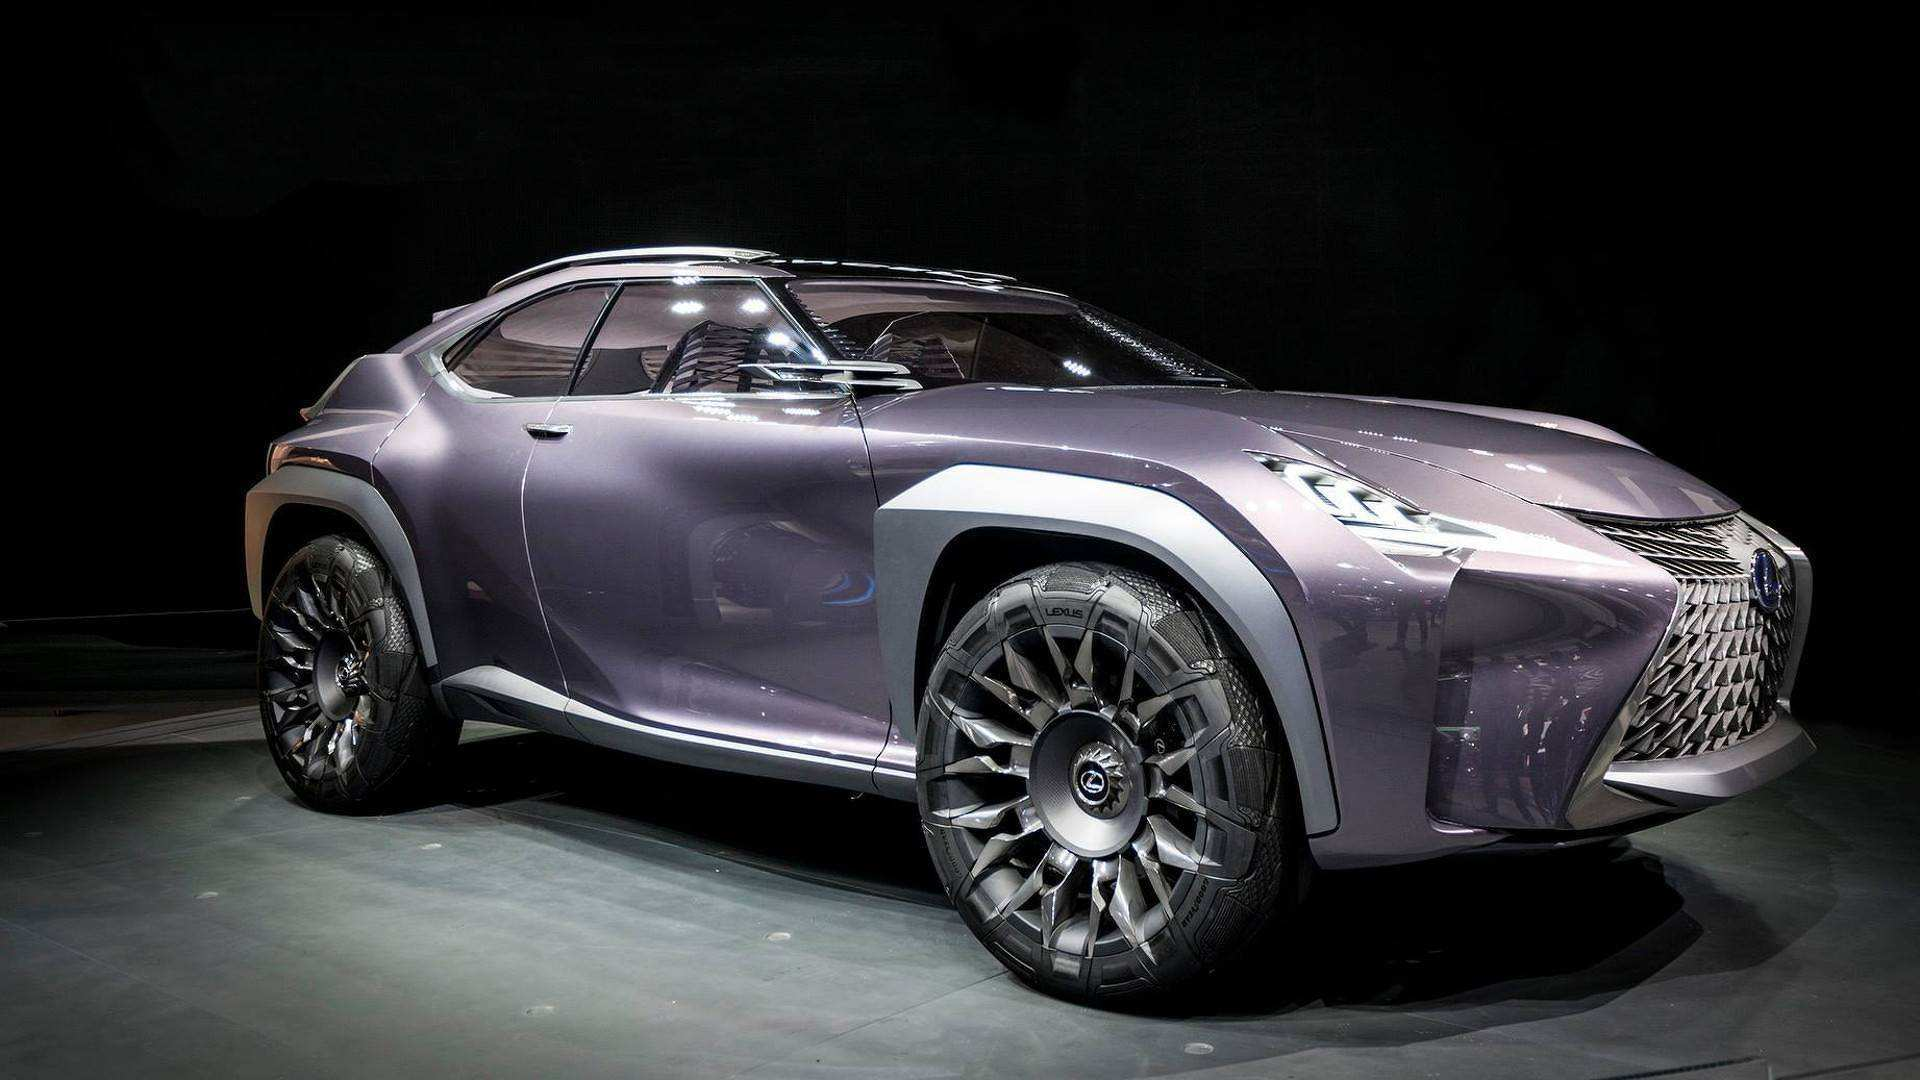 83 All New Lexus Future Cars 2020 Concept with Lexus Future Cars 2020